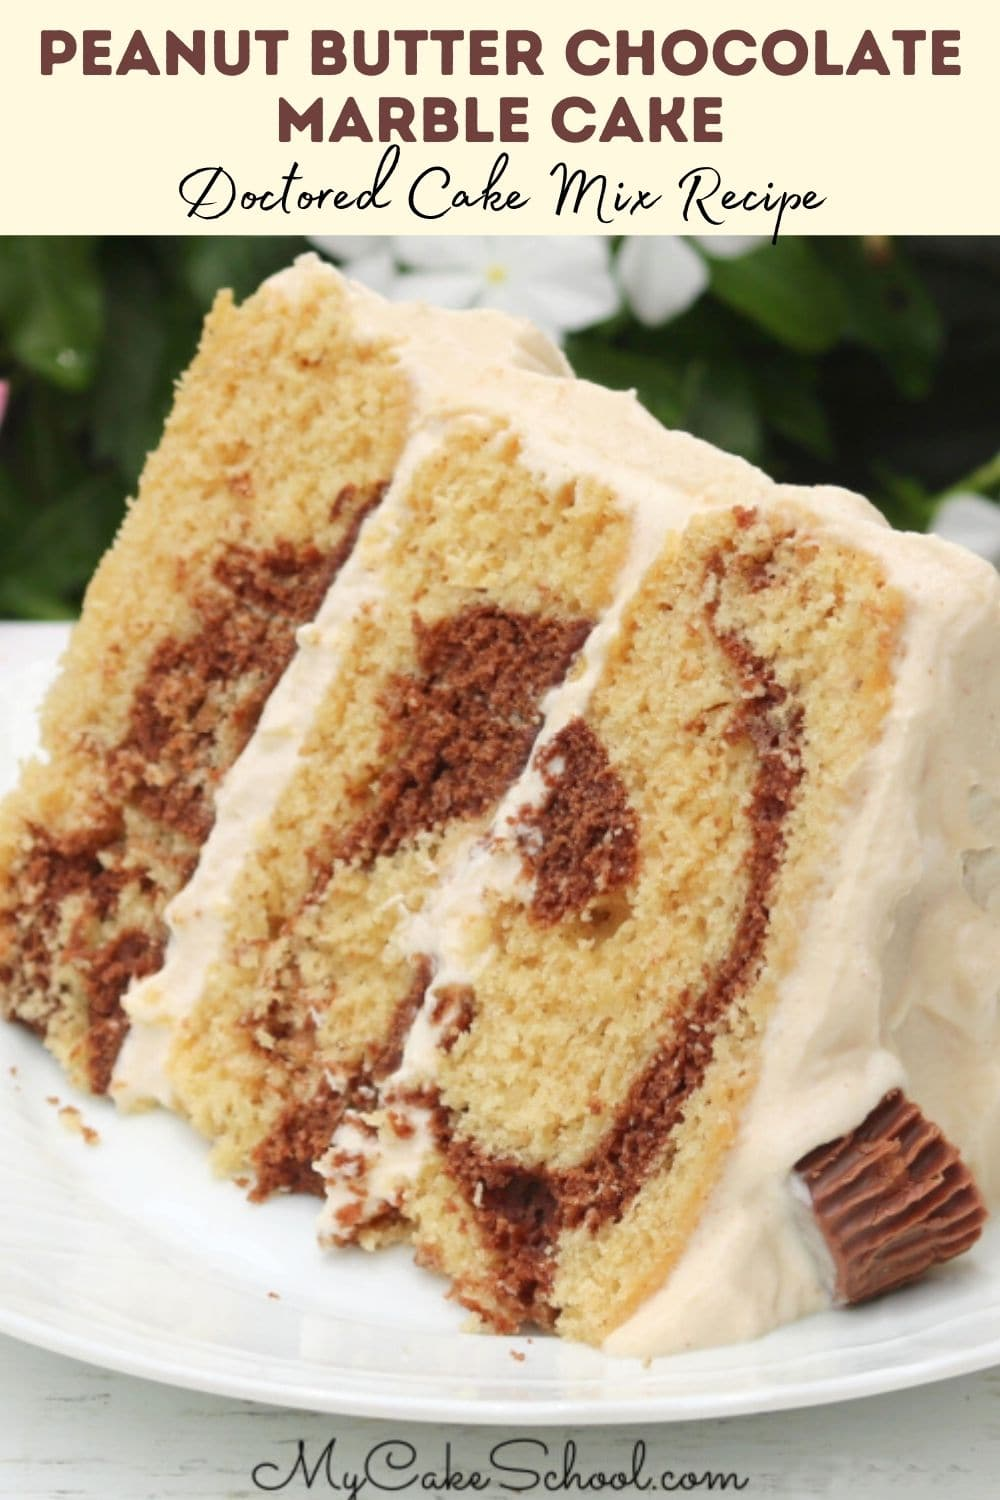 Peanut Butter Chocolate Marble Cake